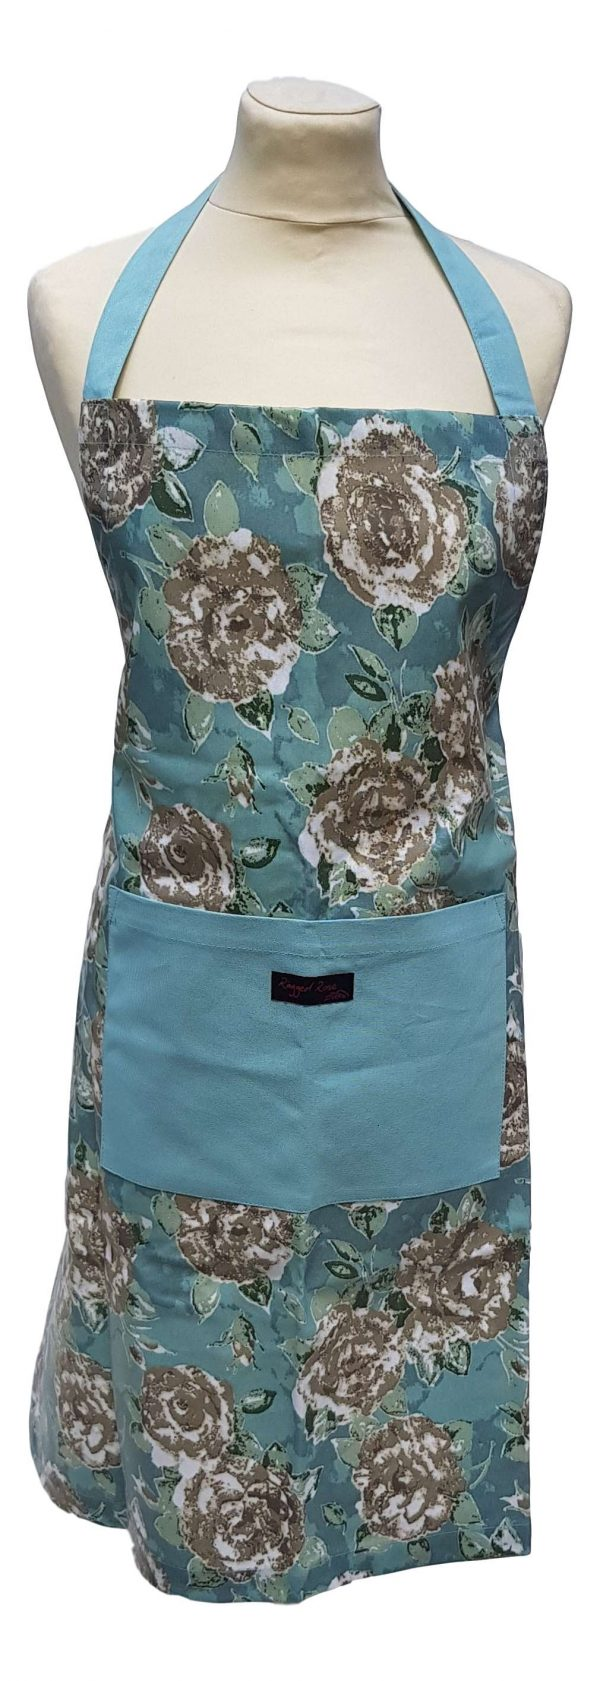 PVC Duck egg Blue Garden Apron